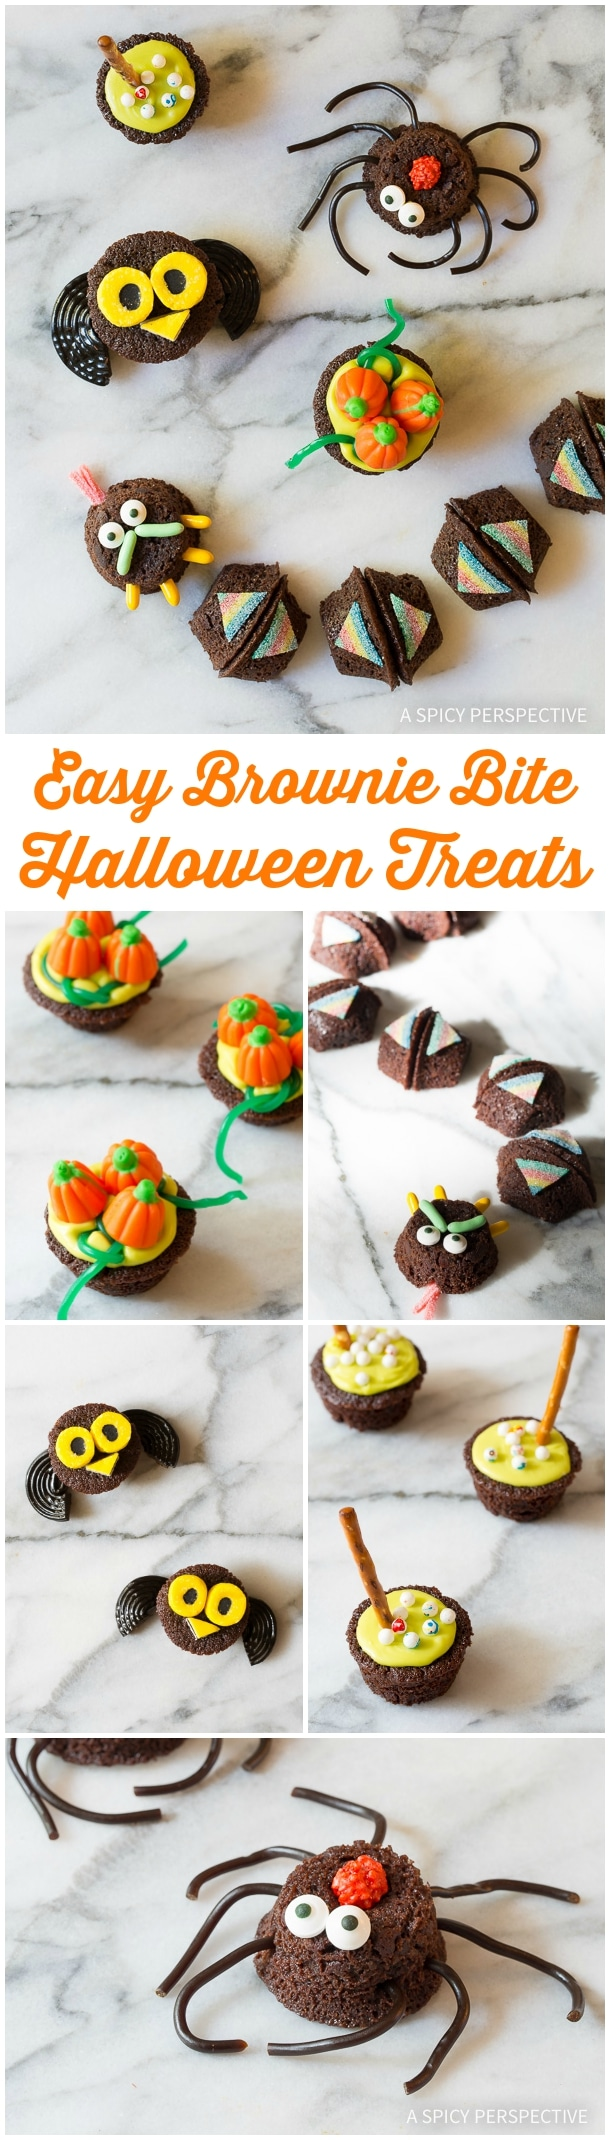 5 Easy Halloween Treats Made with Brownie Bites on ASpicyPerspective.com - Fun for Kids!